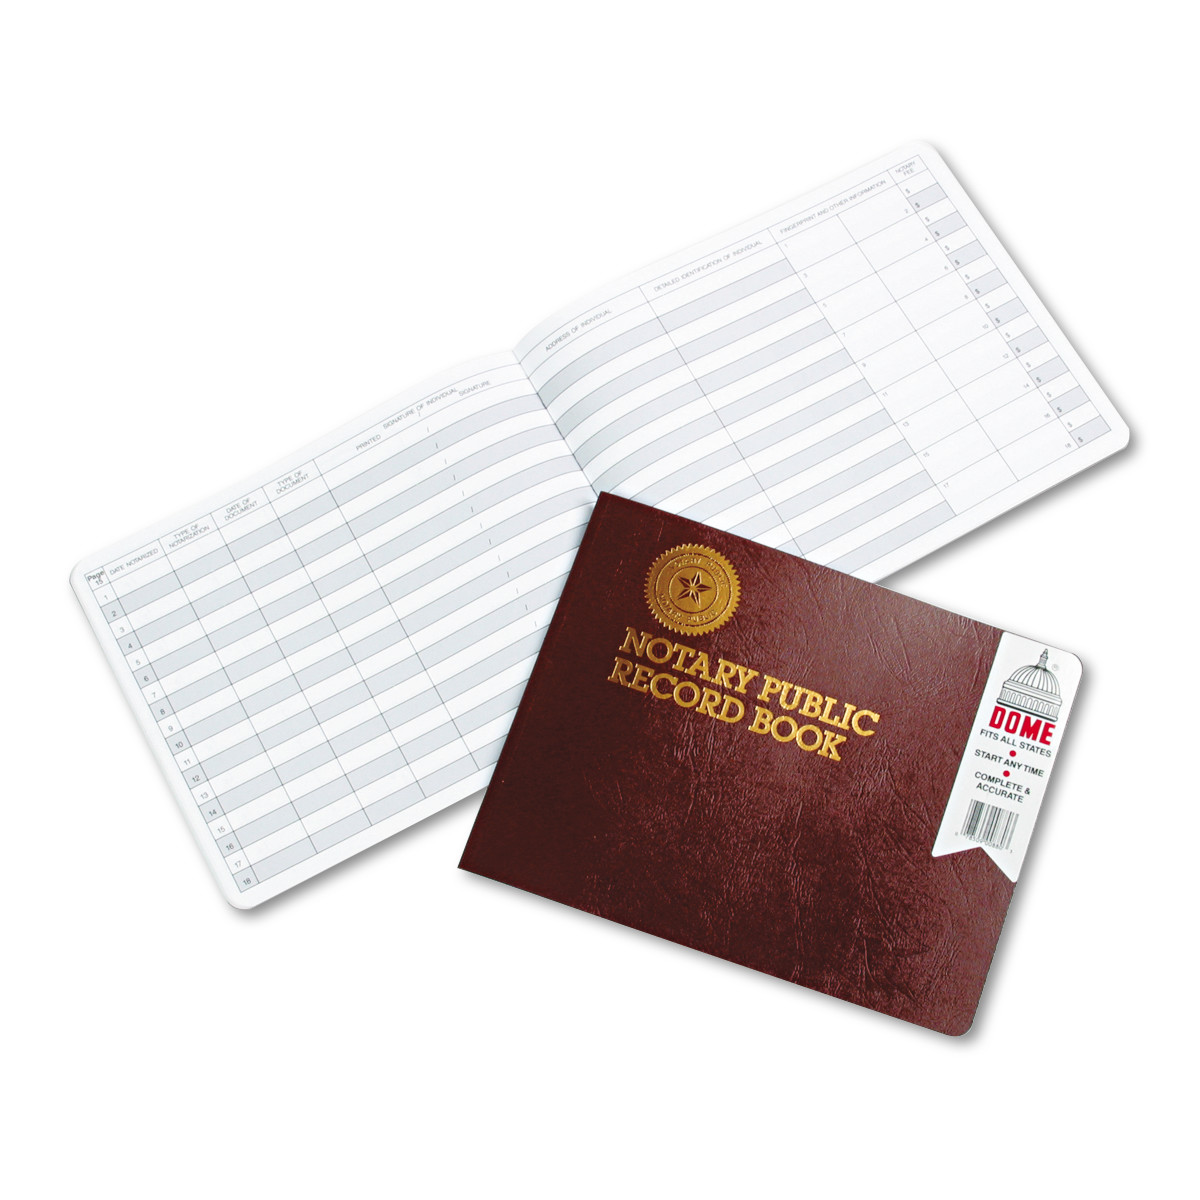 Dome Notary Public Record, Burgundy Cover, 60 Pages, 8 1/2 x 10 1/2 -DOM880